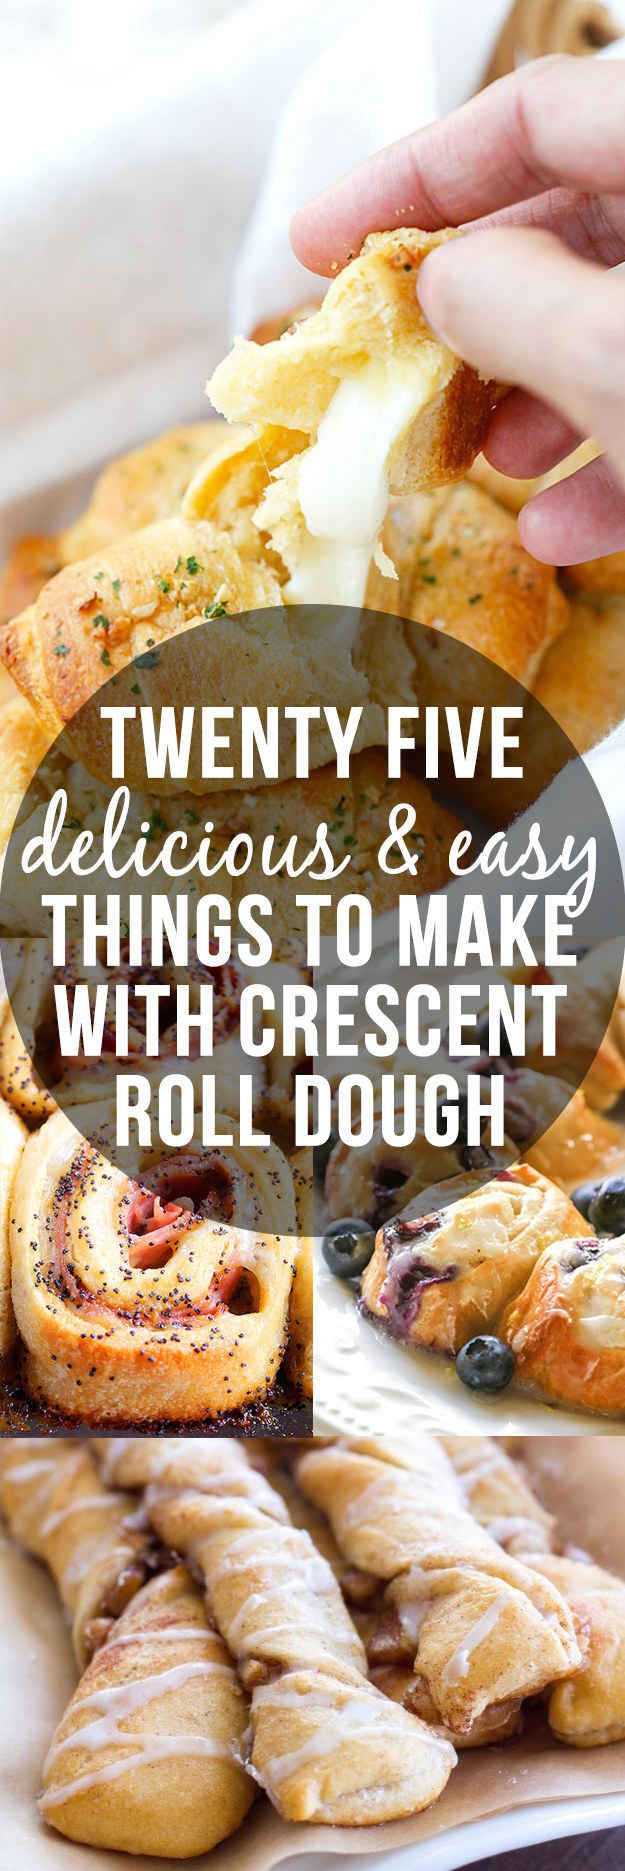 25 Mind-Blowing Ways To Use Crescent Roll Dough. Um, yeah. I might have to try some of these.